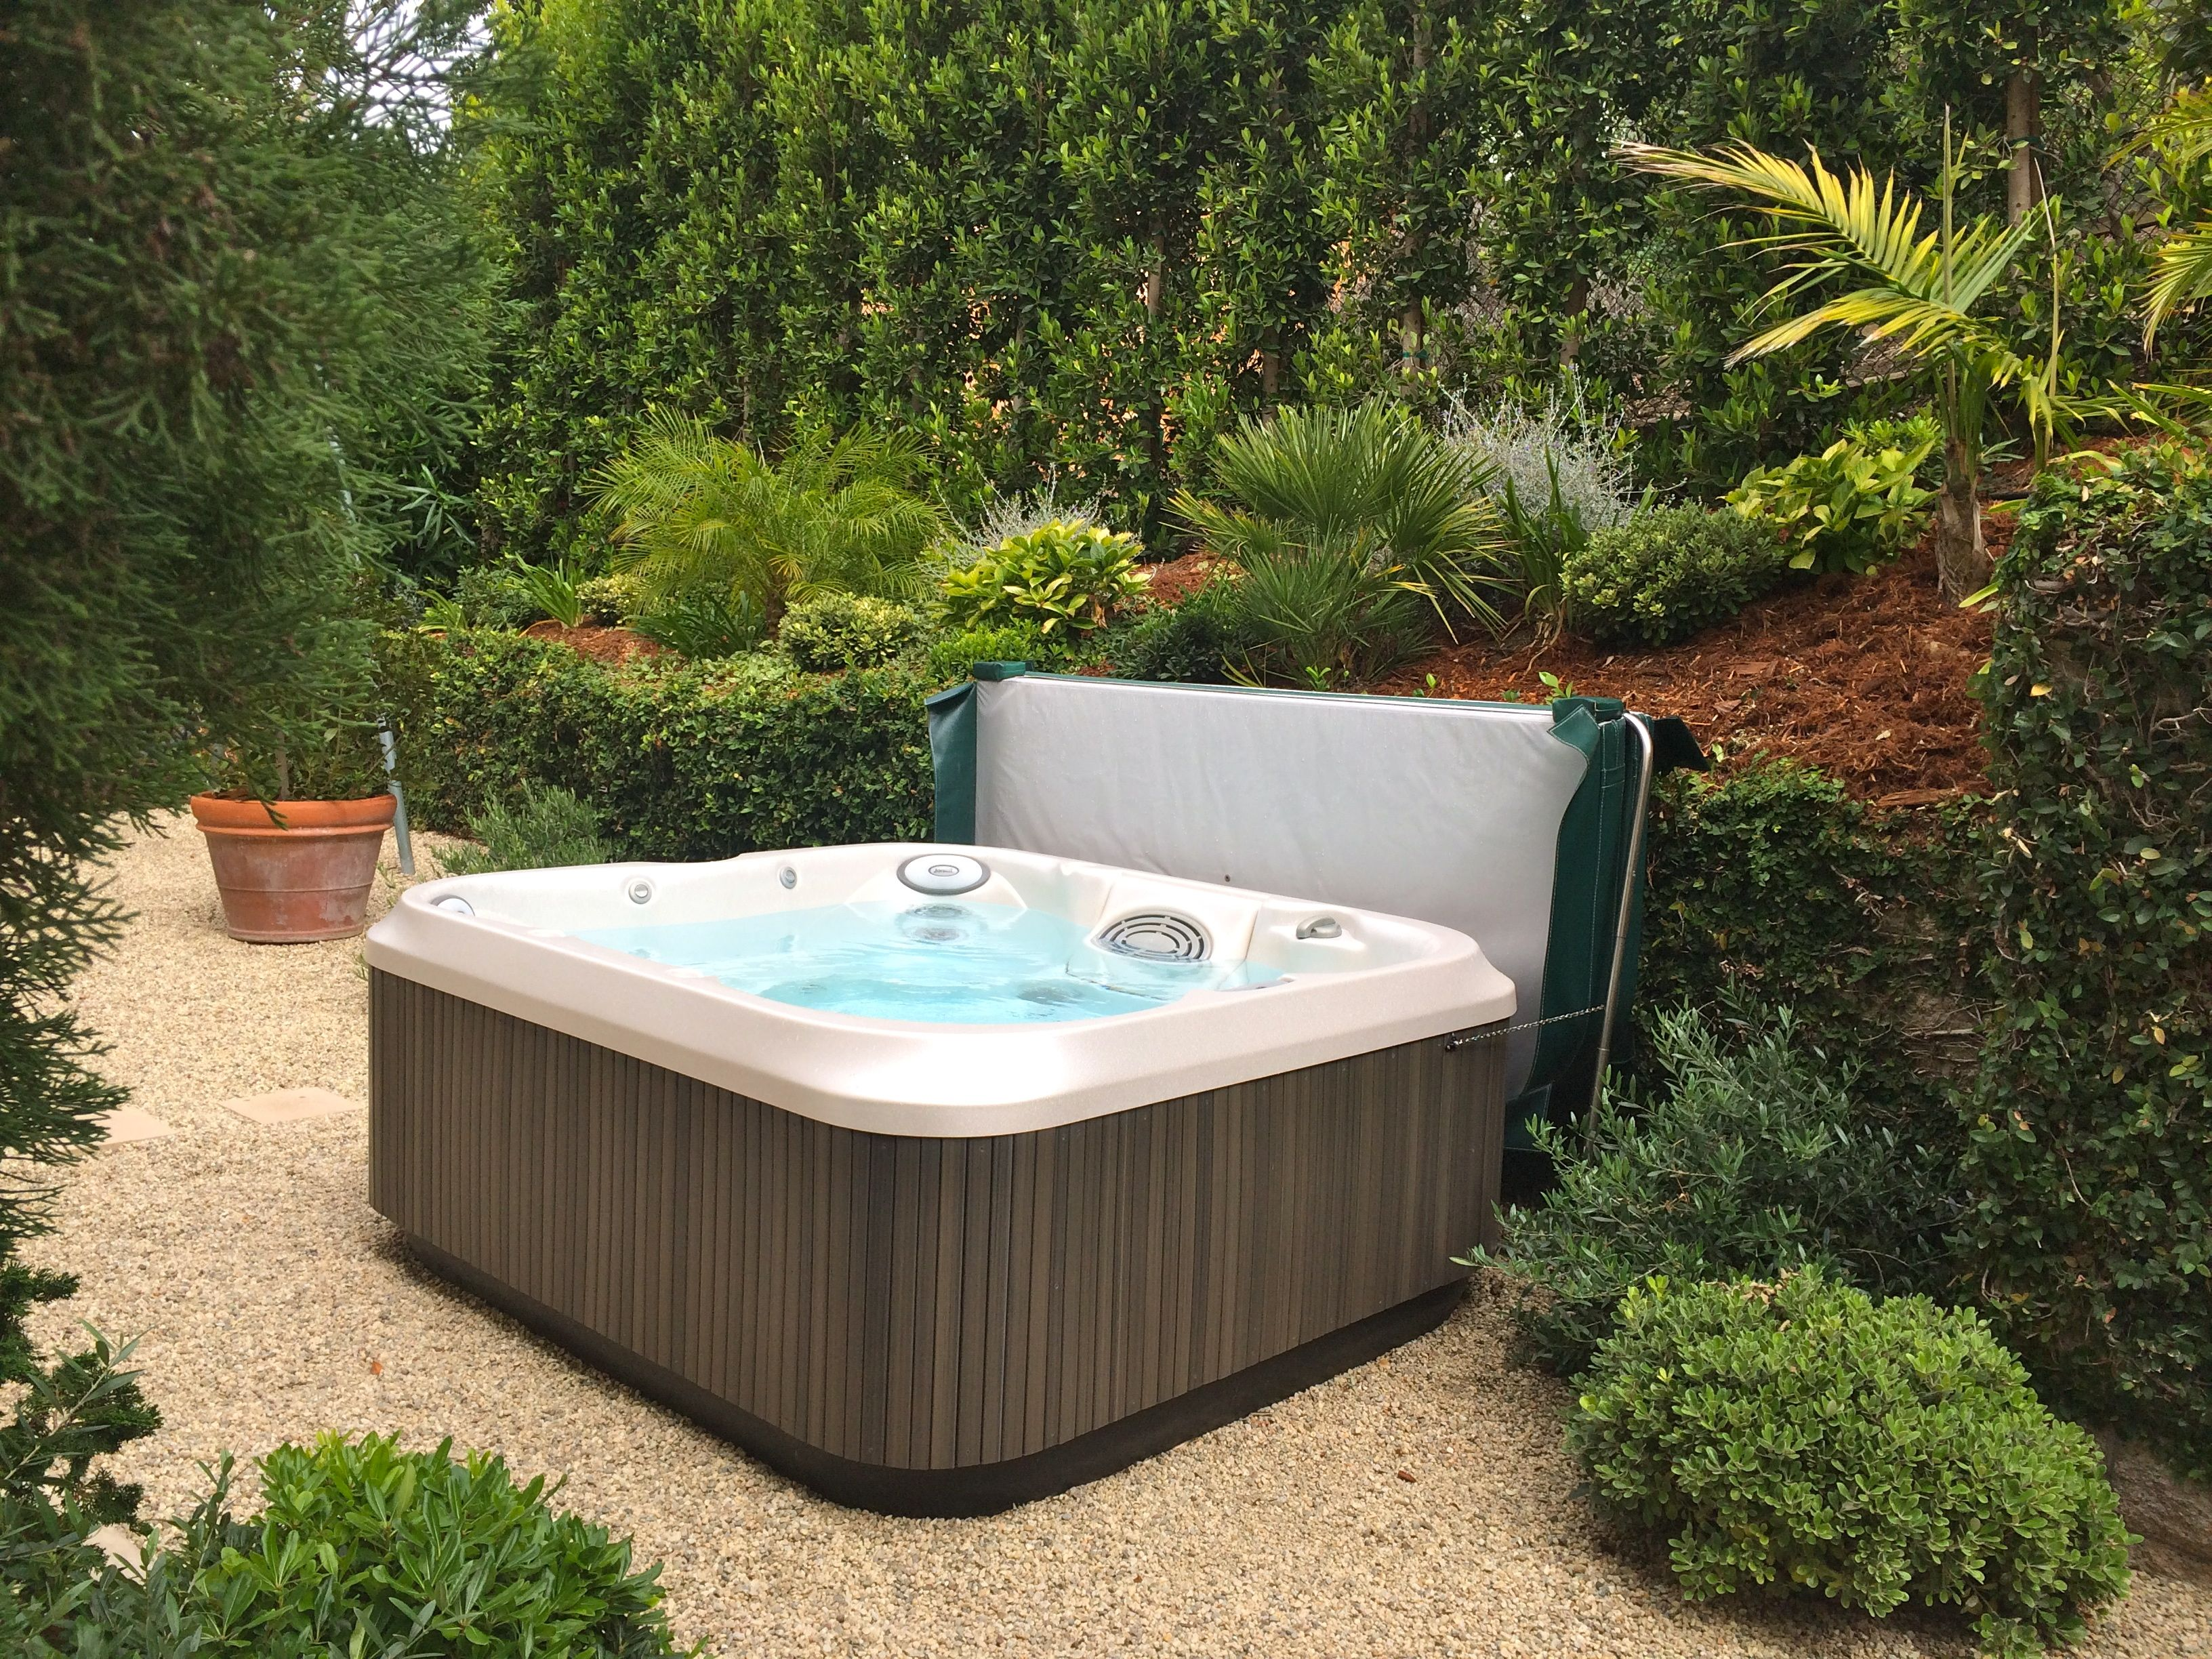 his flair us service hotspringspas american dayton sale highlife best hot sales pinterest love on ohio happy wonderful our spring from is images customer rep nxt tubbers and tub have tubs knowledge stream it the spas keep in carol